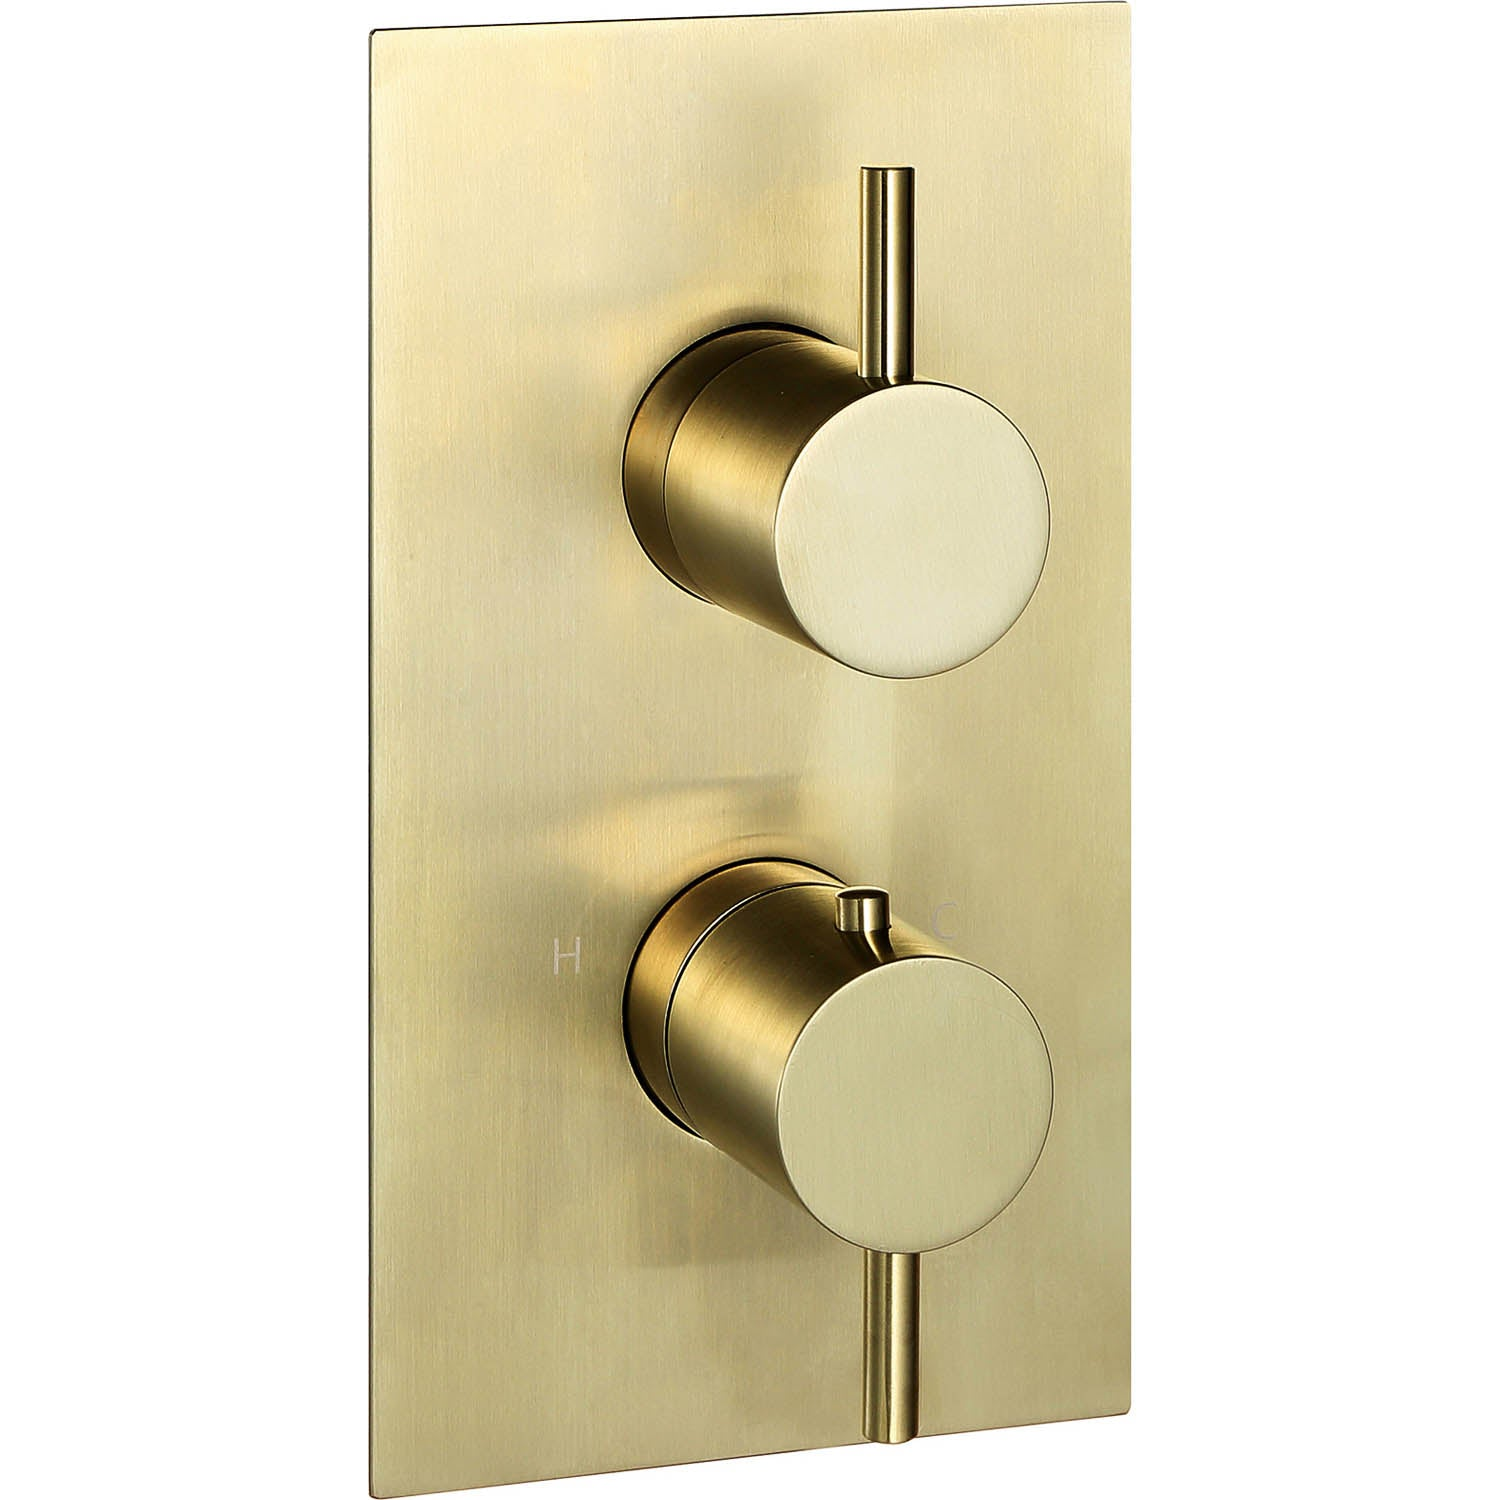 Dual outlet Libero Concealed Shower Valve with a brushed brass finish on a white background